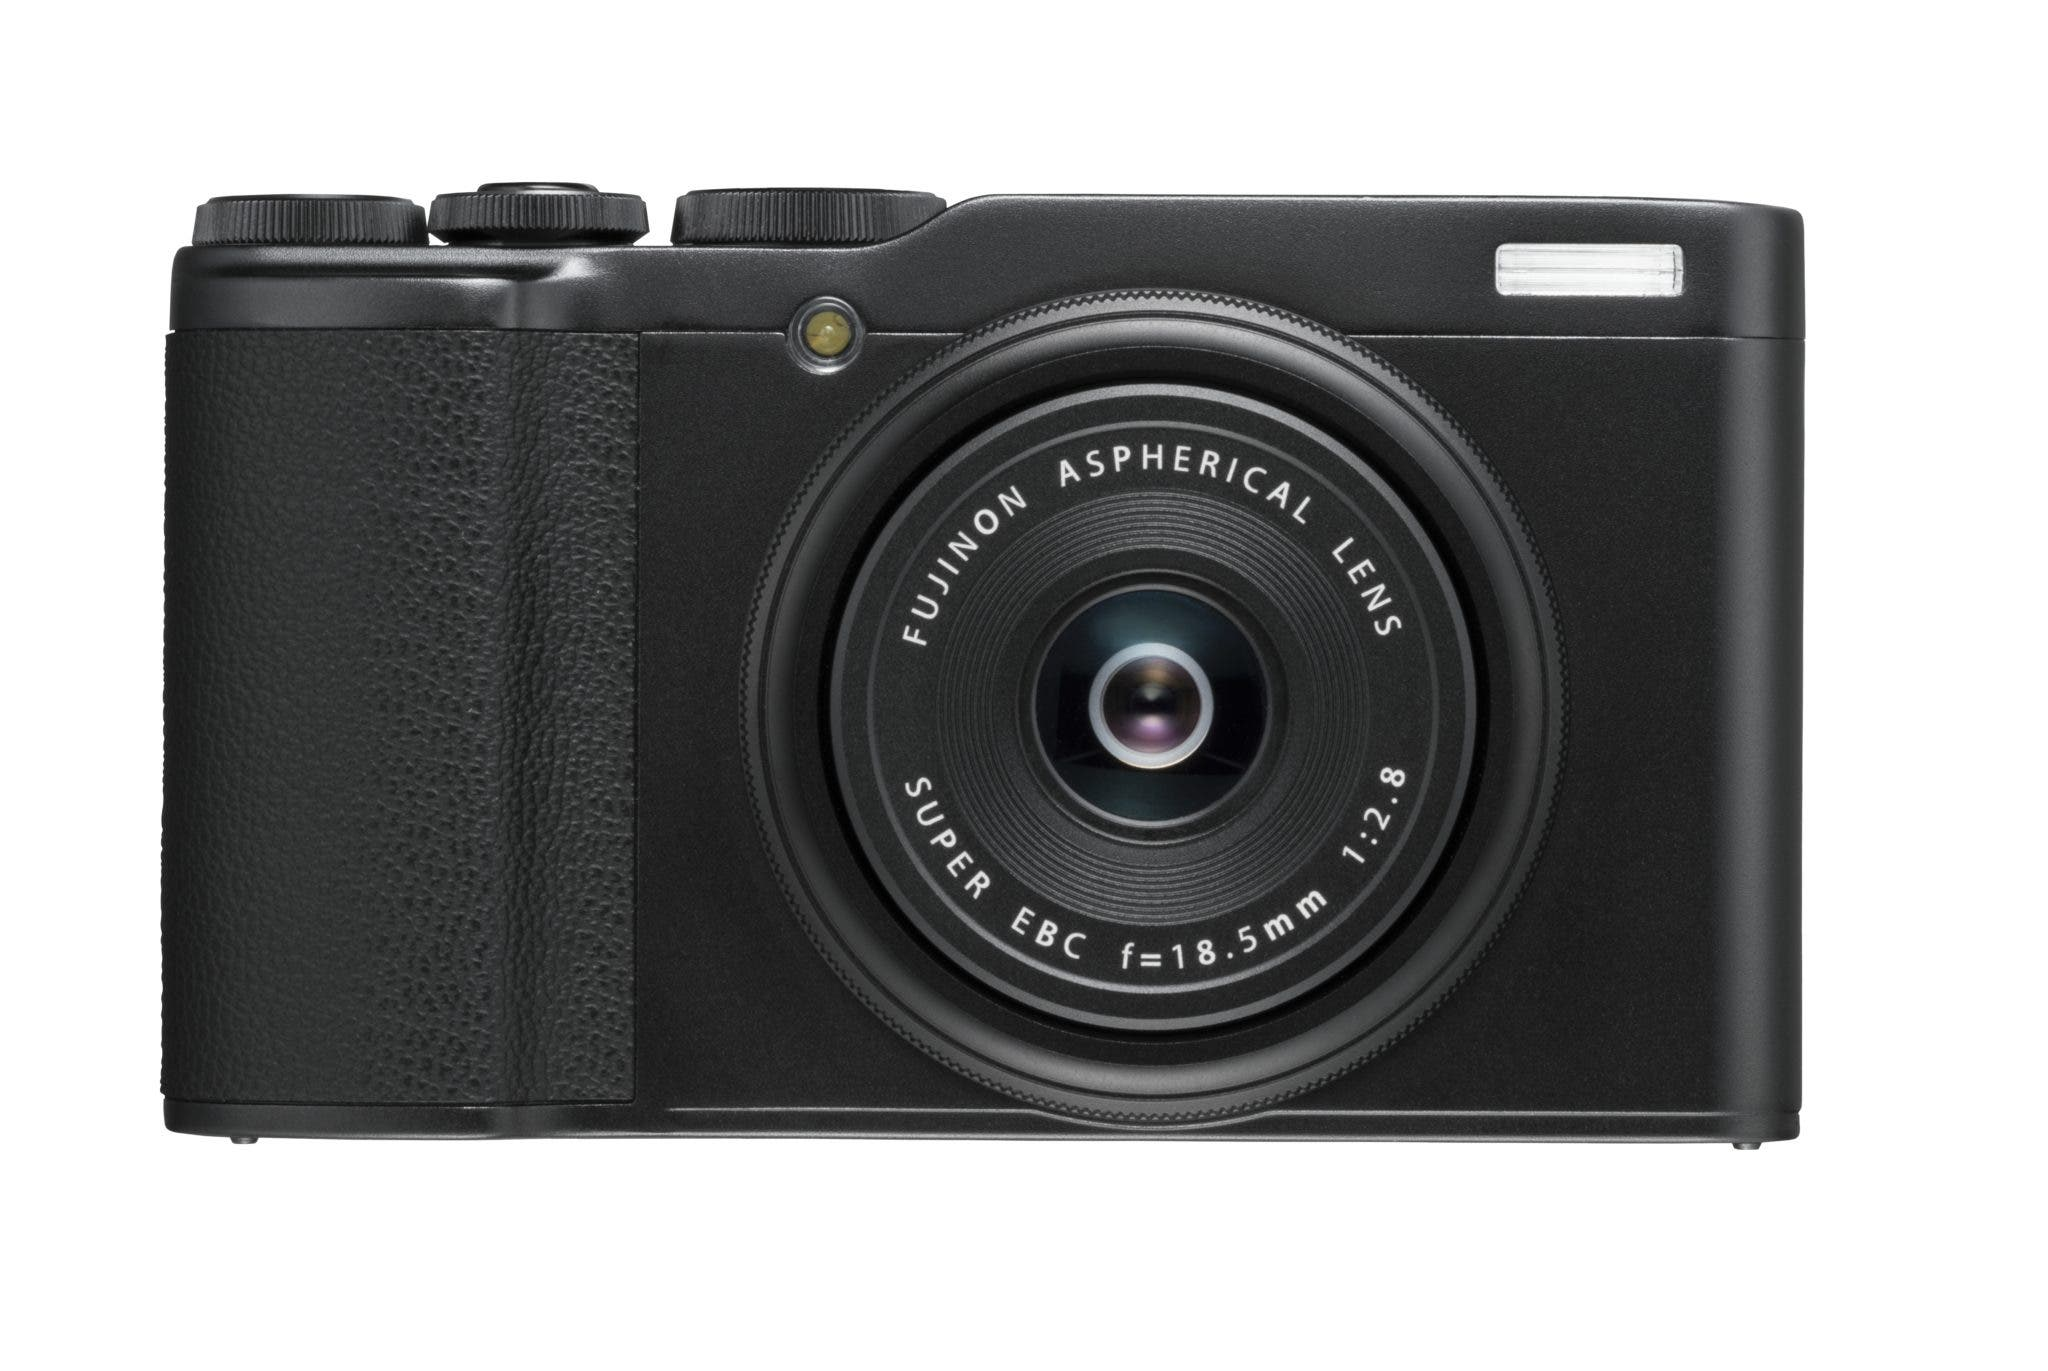 Best options set up for fujifilm x70